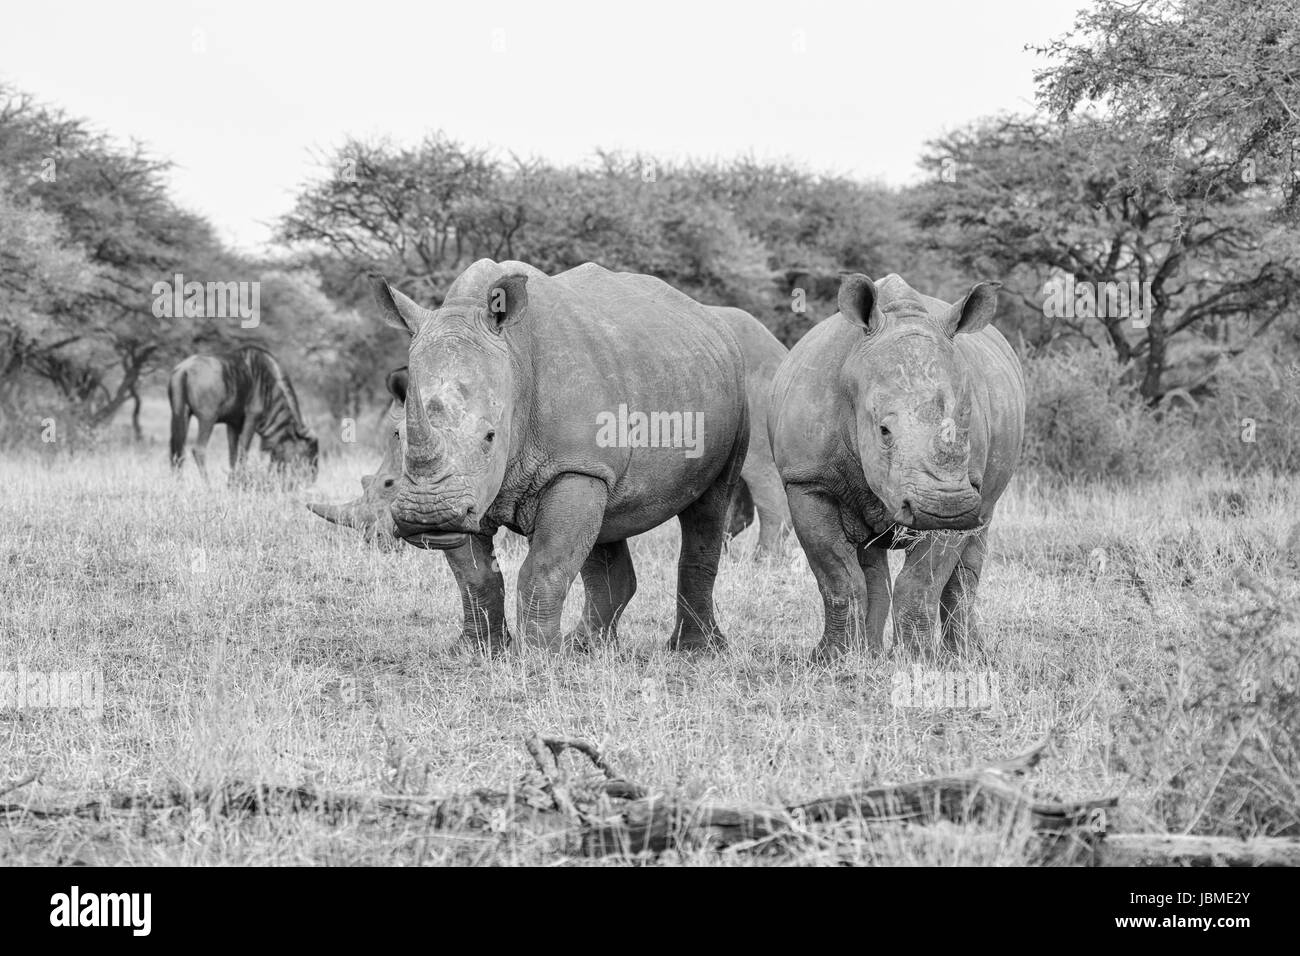 A group of White Rhinos grazing in Southern African savanna - Stock Image